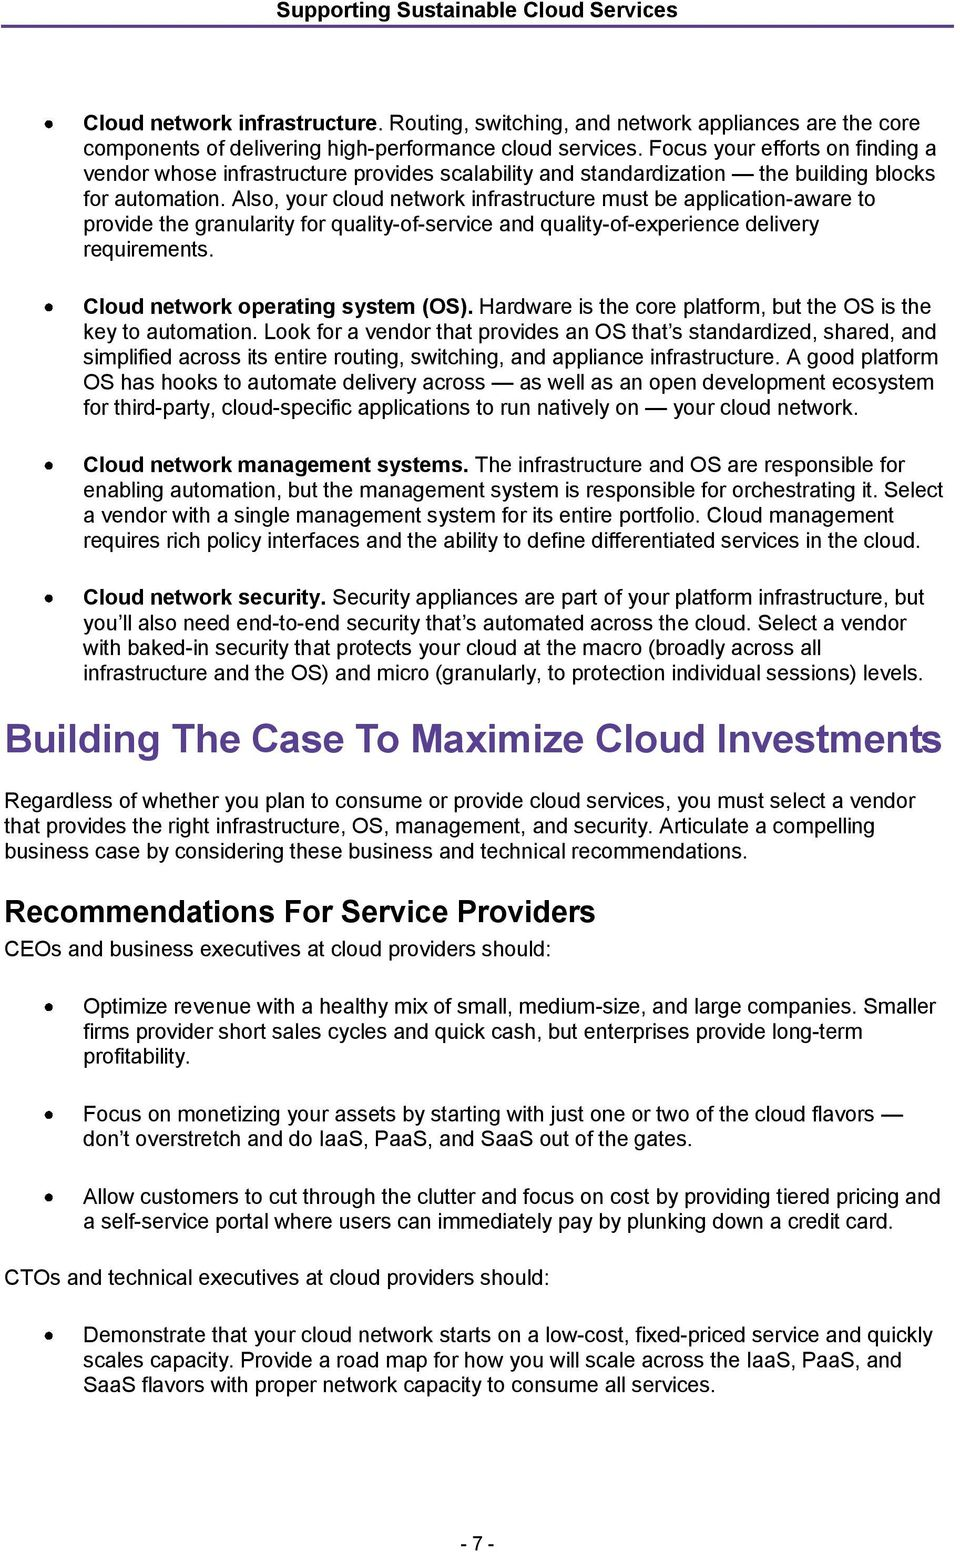 Also, your cloud network infrastructure must be application-aware to provide the granularity for quality-of-service and quality-of-experience delivery requirements.